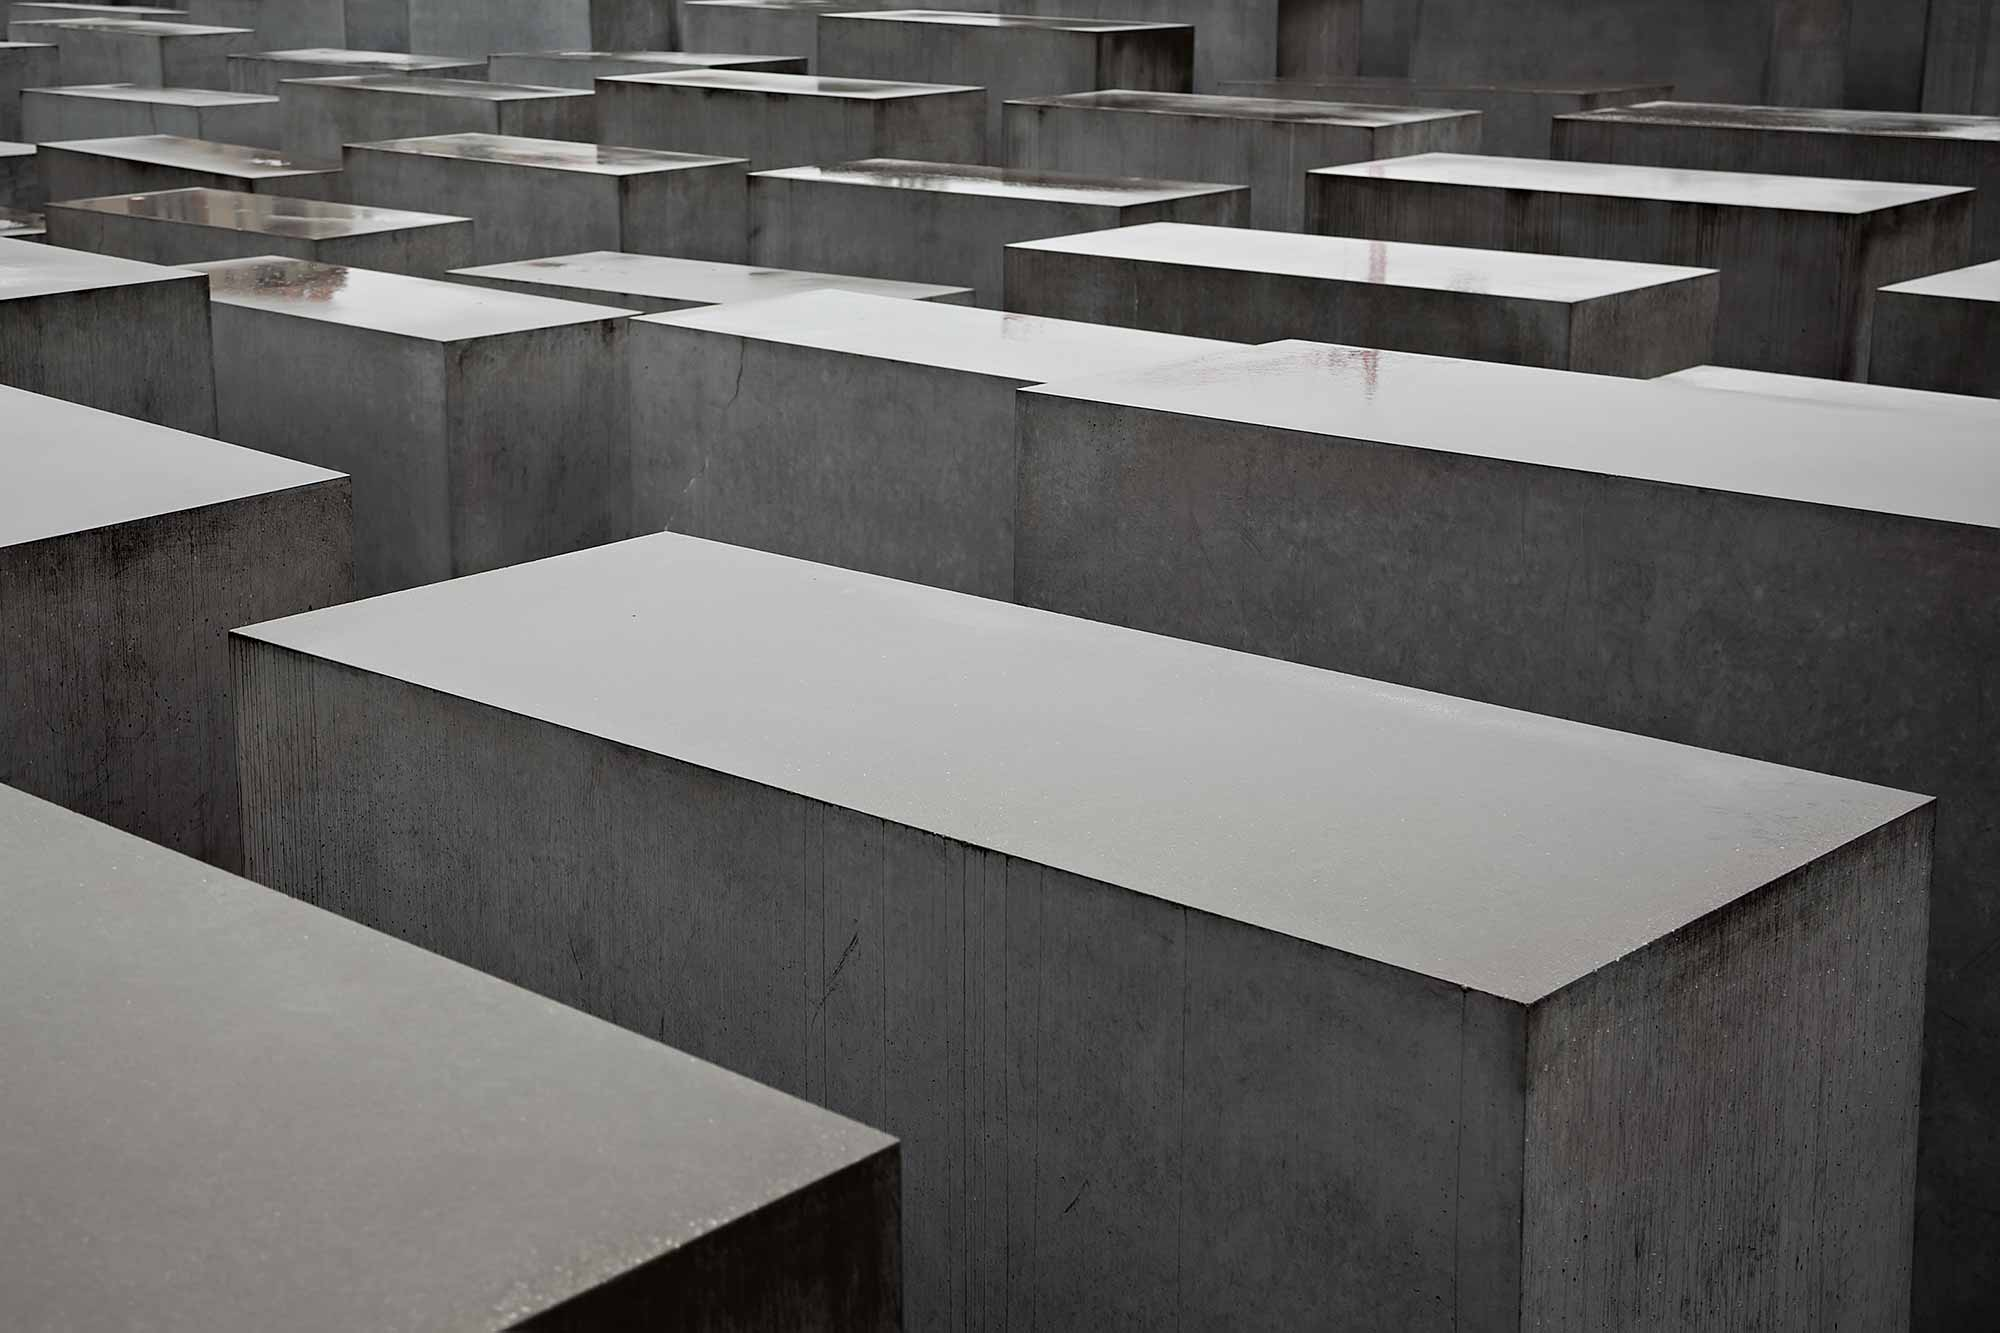 The Jewish Memorial in Berlin. © Ulli Maier & Nisa Maier